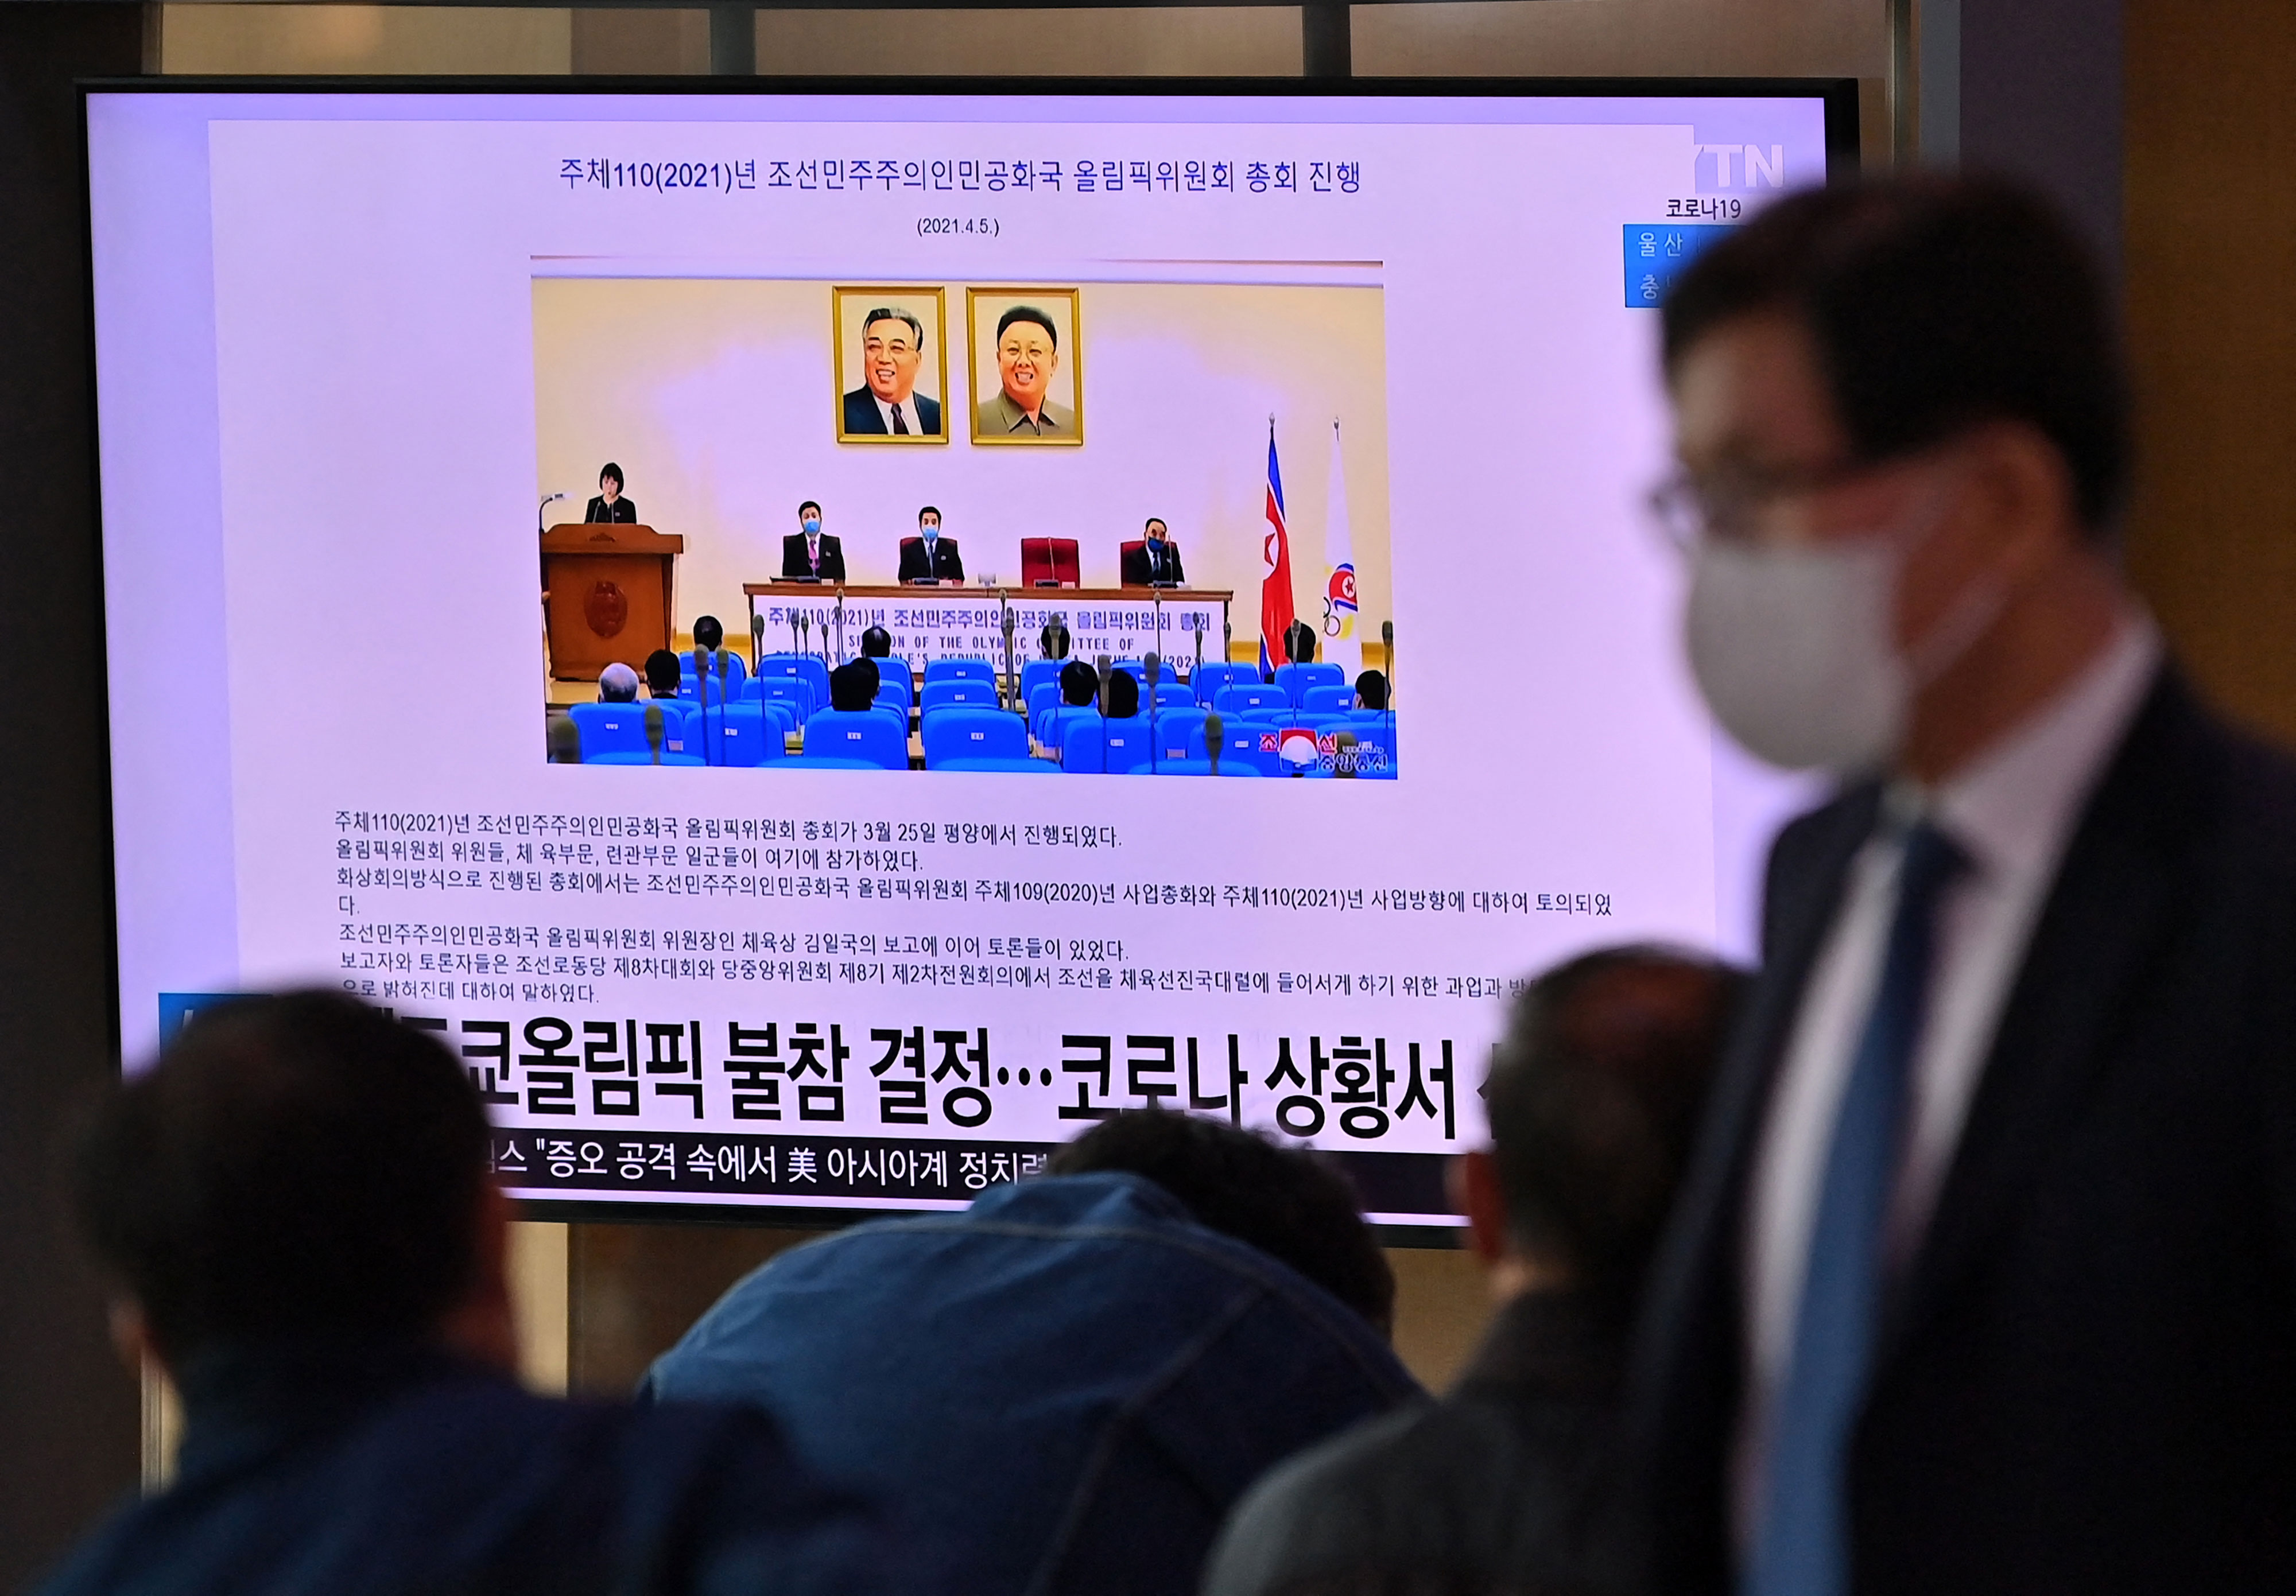 People at a railway station in Seoul, South Korea, watch a news report about North Korea's decision not to participate in the Tokyo Olympic Games due to Covid-19 concerns on April 6.